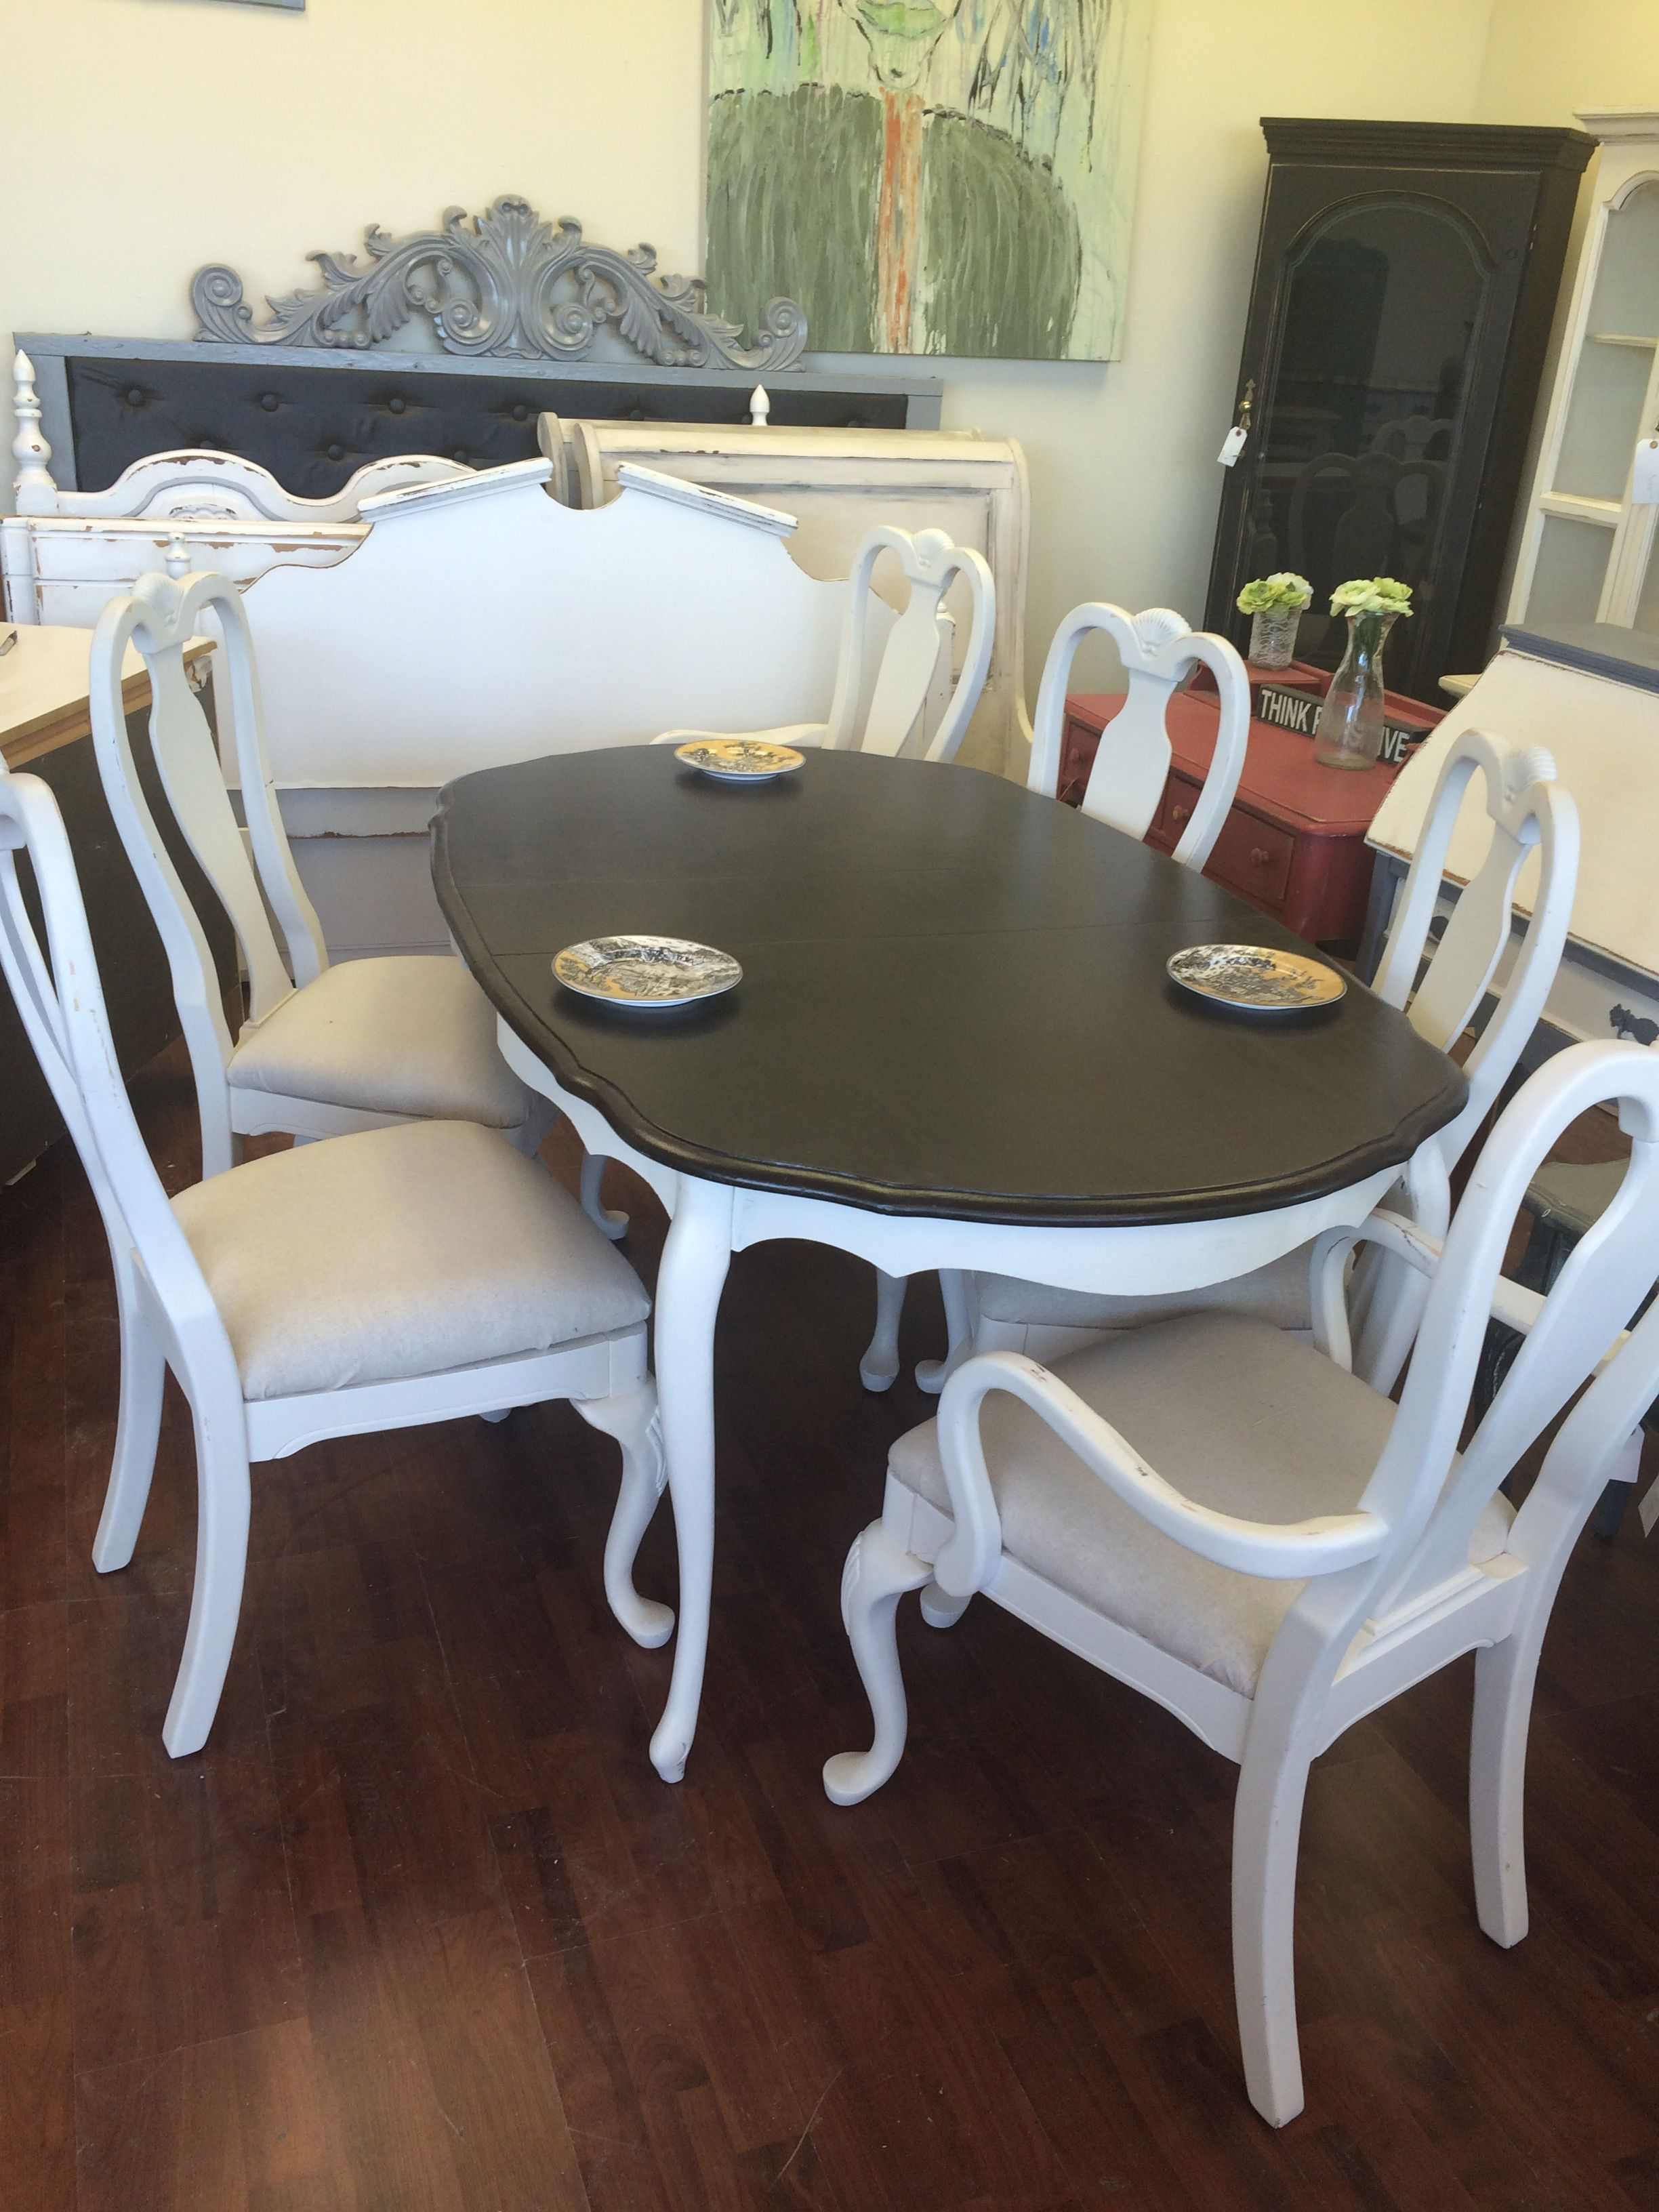 Here Is A Queen Anne Table And Six Chairs That I Painted Distressed White With Stained Top Burlap Upholstered This Would Be The First